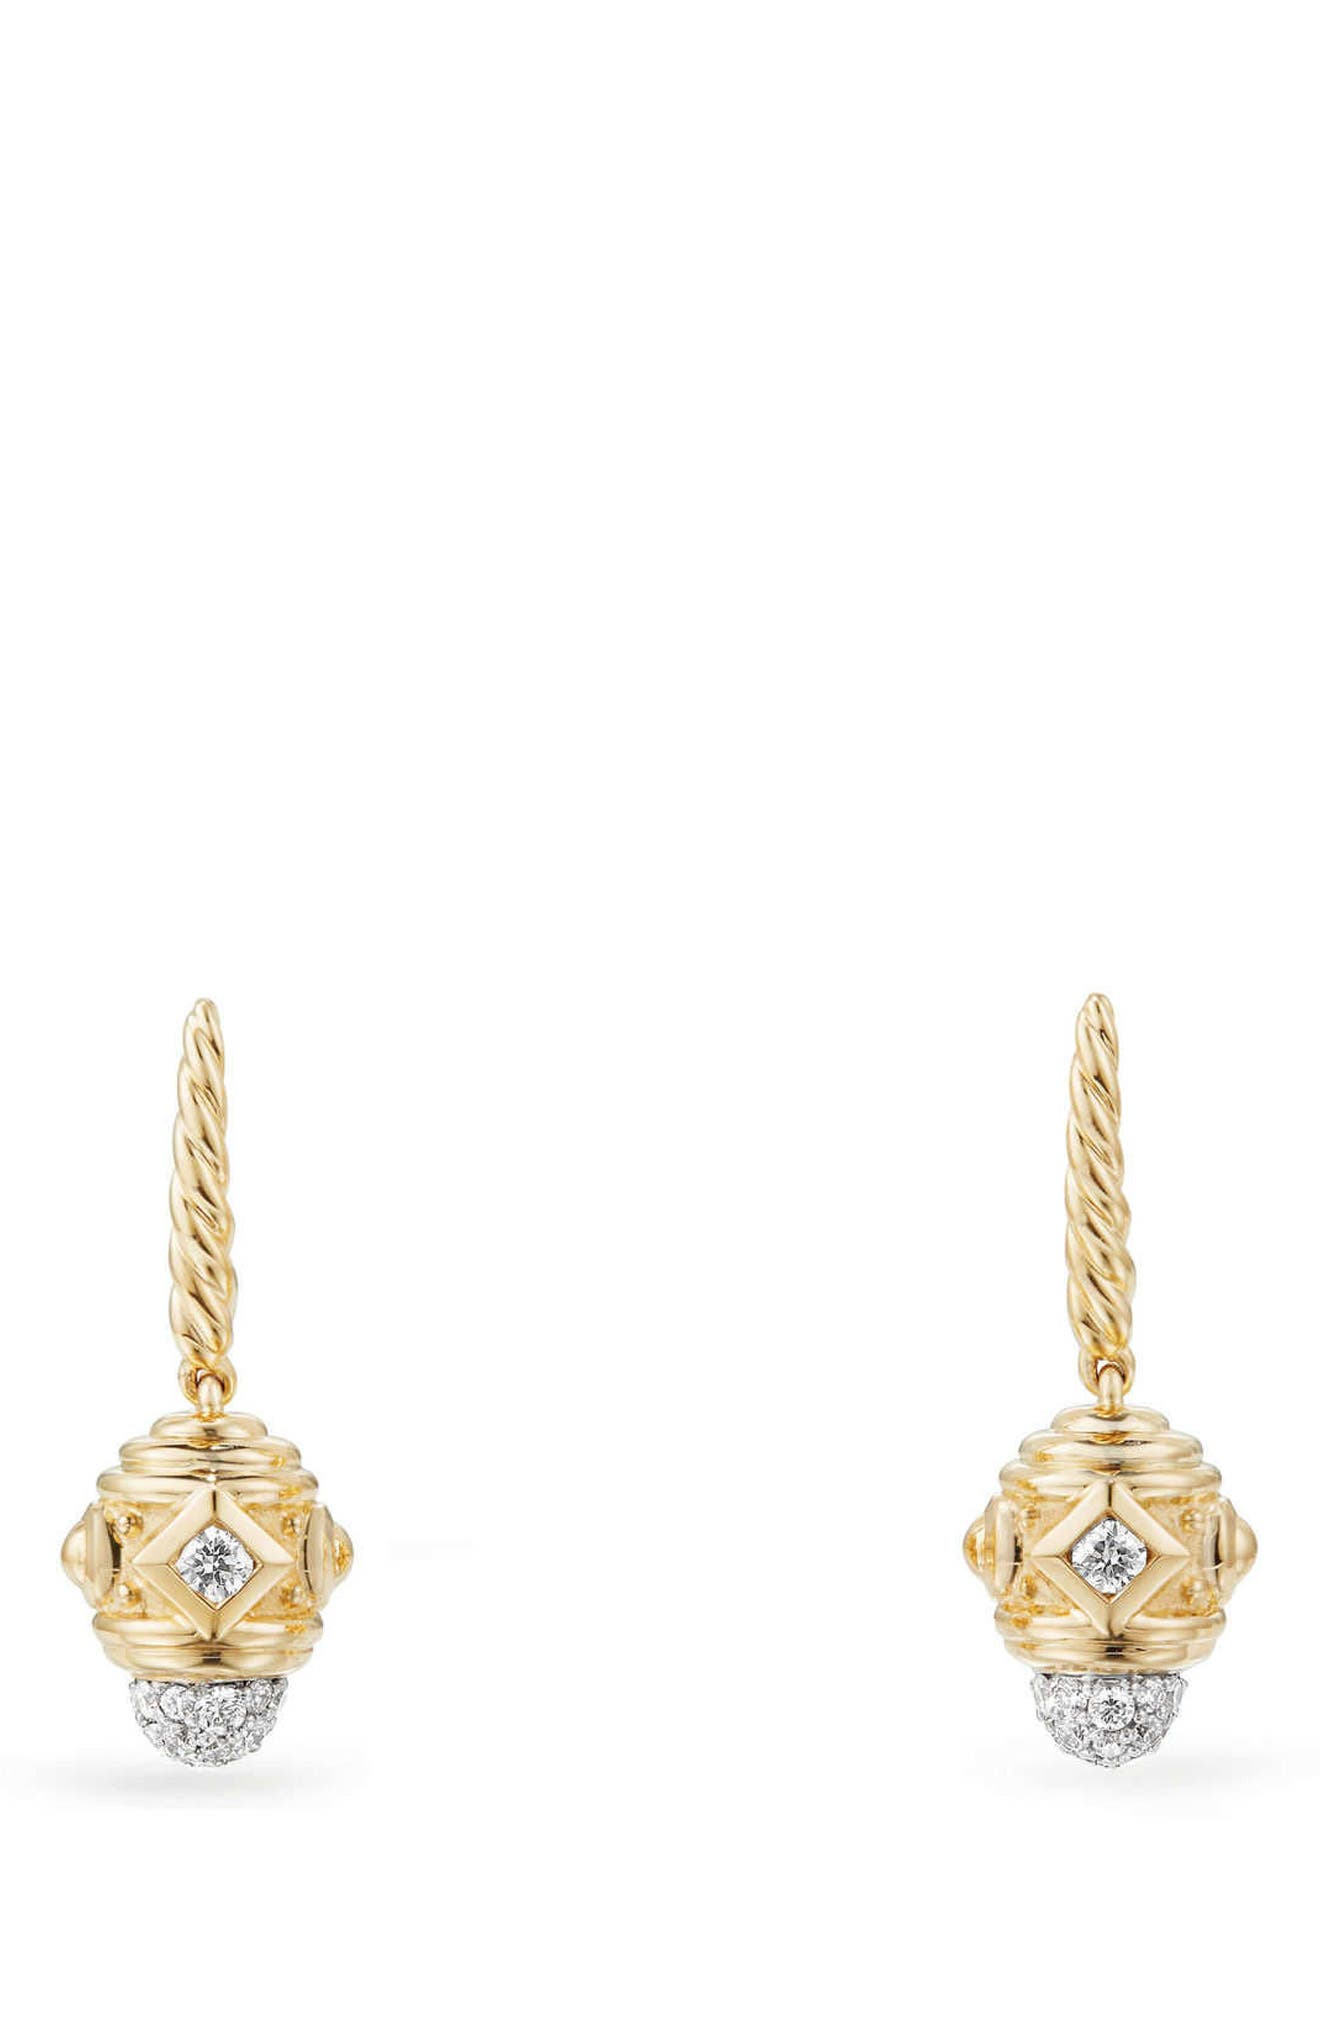 Renaissance Drop Earrings with Diamonds in 18K Gold,                         Main,                         color, Gold/ Diamond